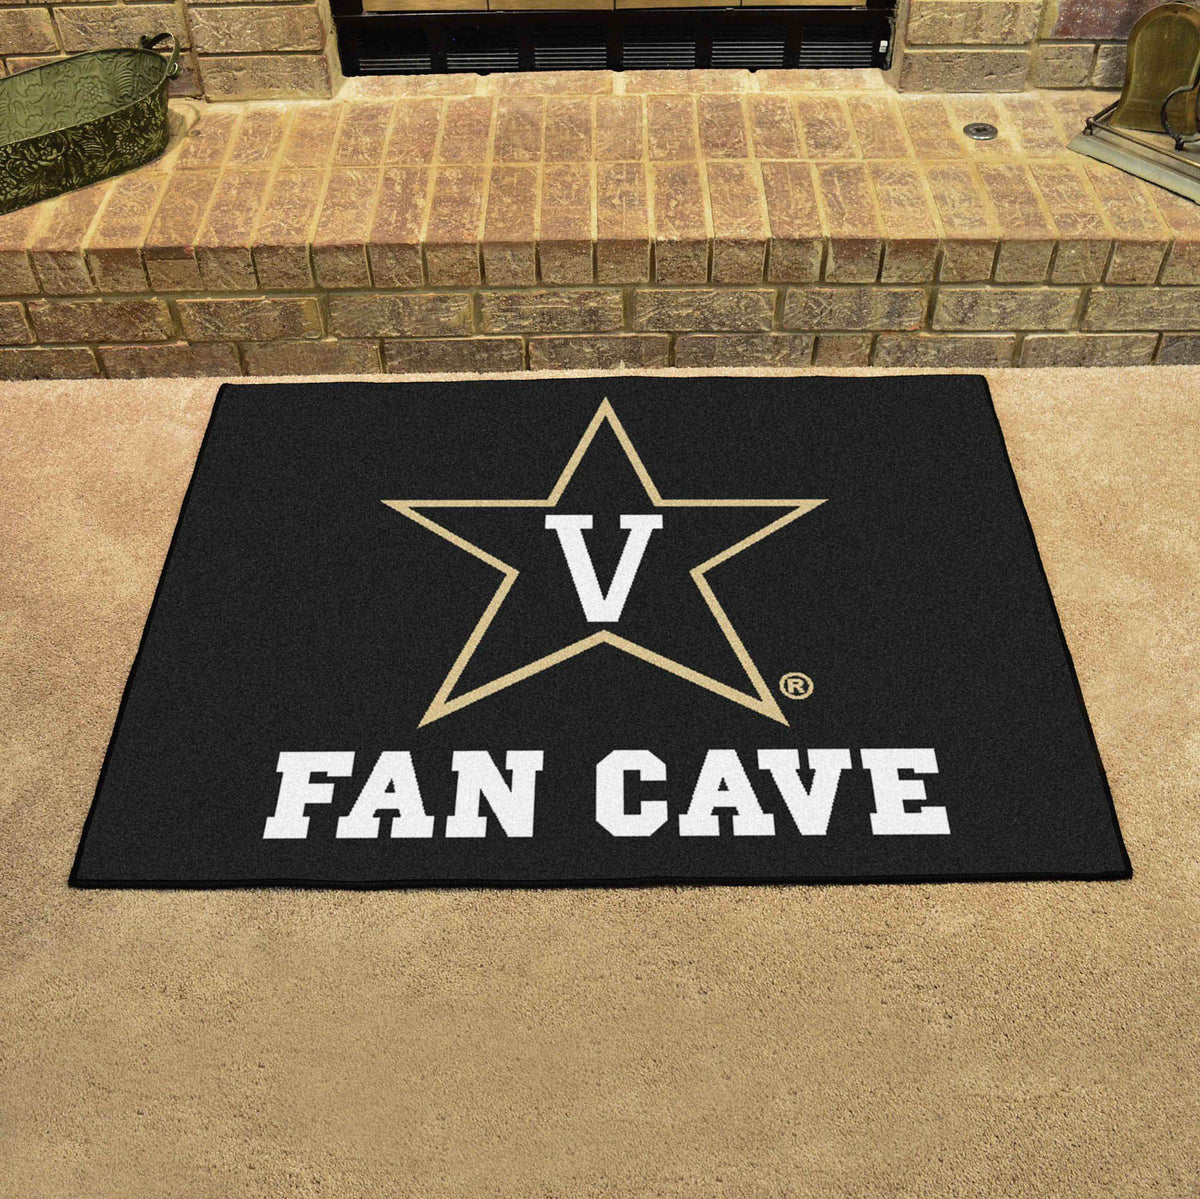 Collegiate - Fan Cave All-Star Mat Collegiate Mats, Rectangular Mats, All-Star Mat, Collegiate, Home Fan Mats Vanderbilt